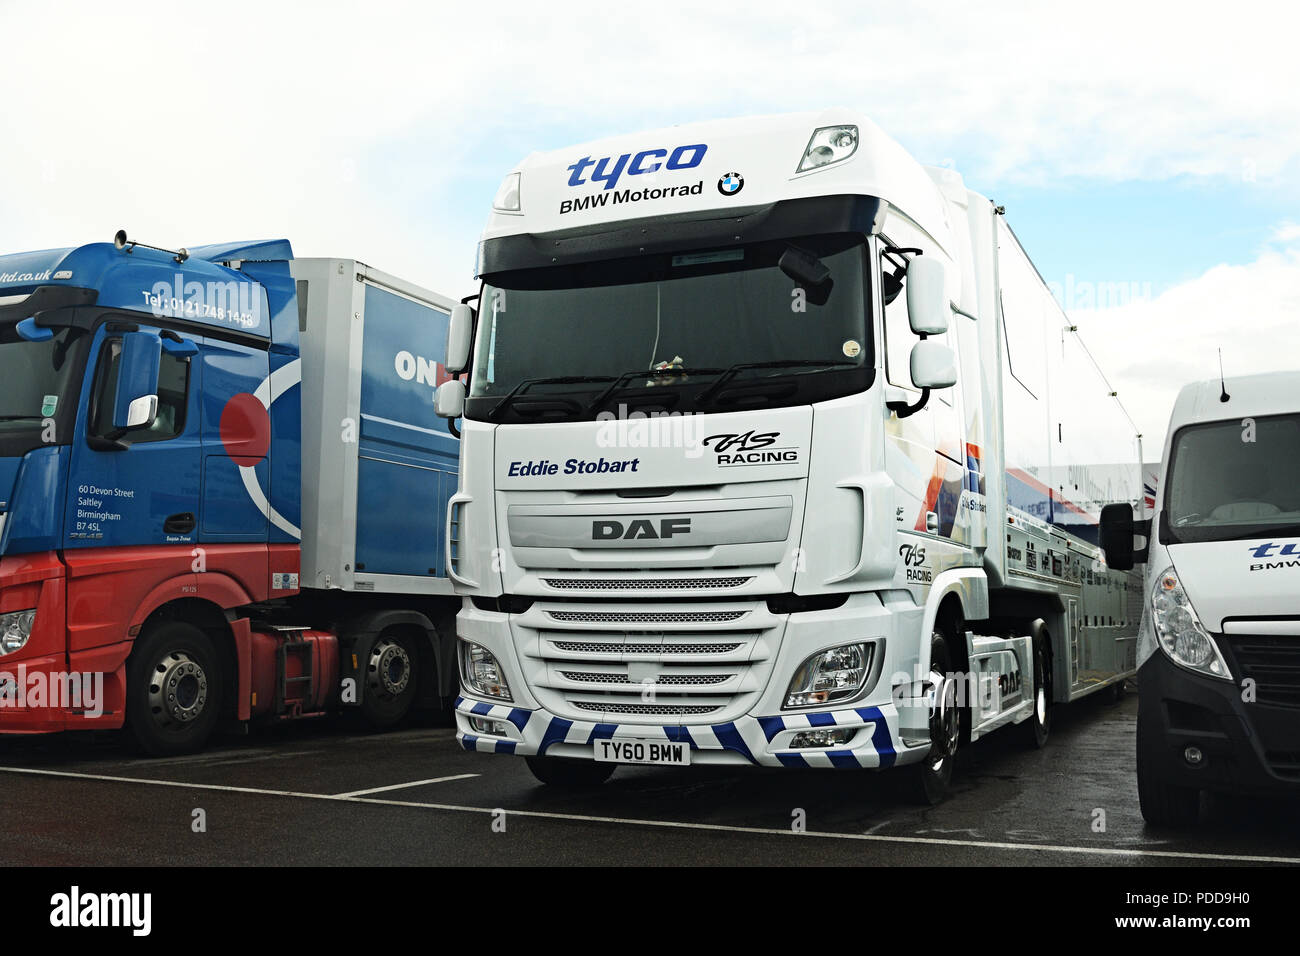 DAF race transporter parked in the paddock at Silverstone Stock Photo